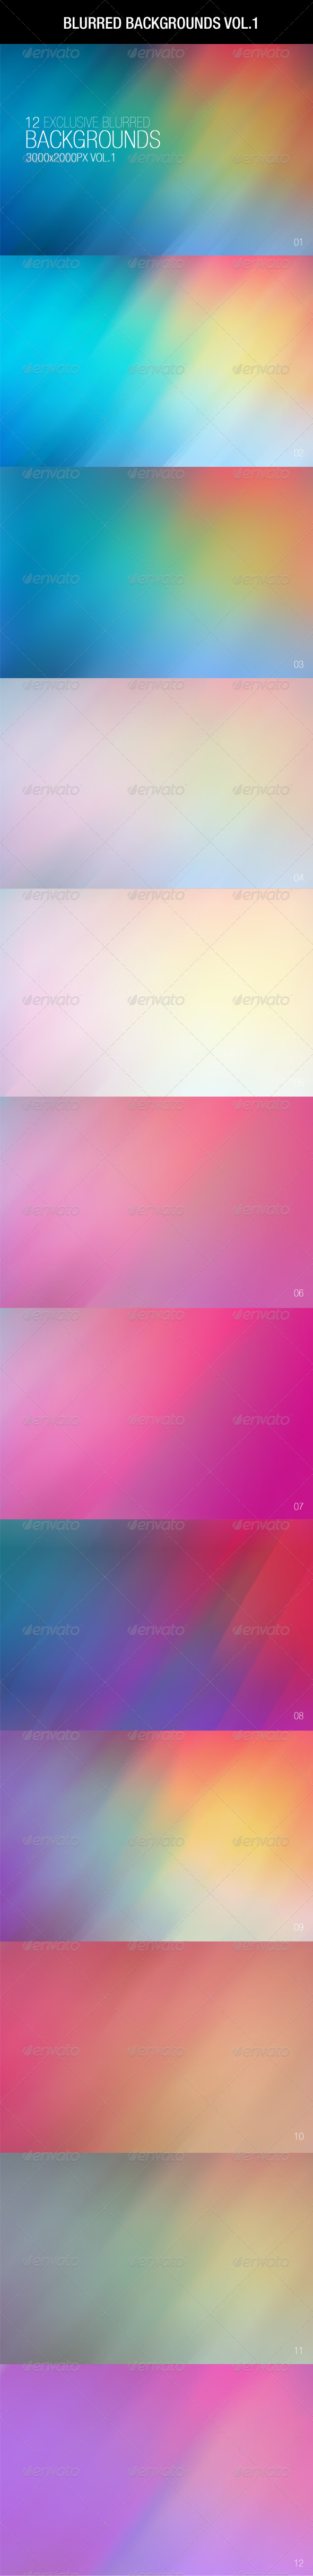 GraphicRiver 12 Blurred Backgrounds Vol.1 6495087